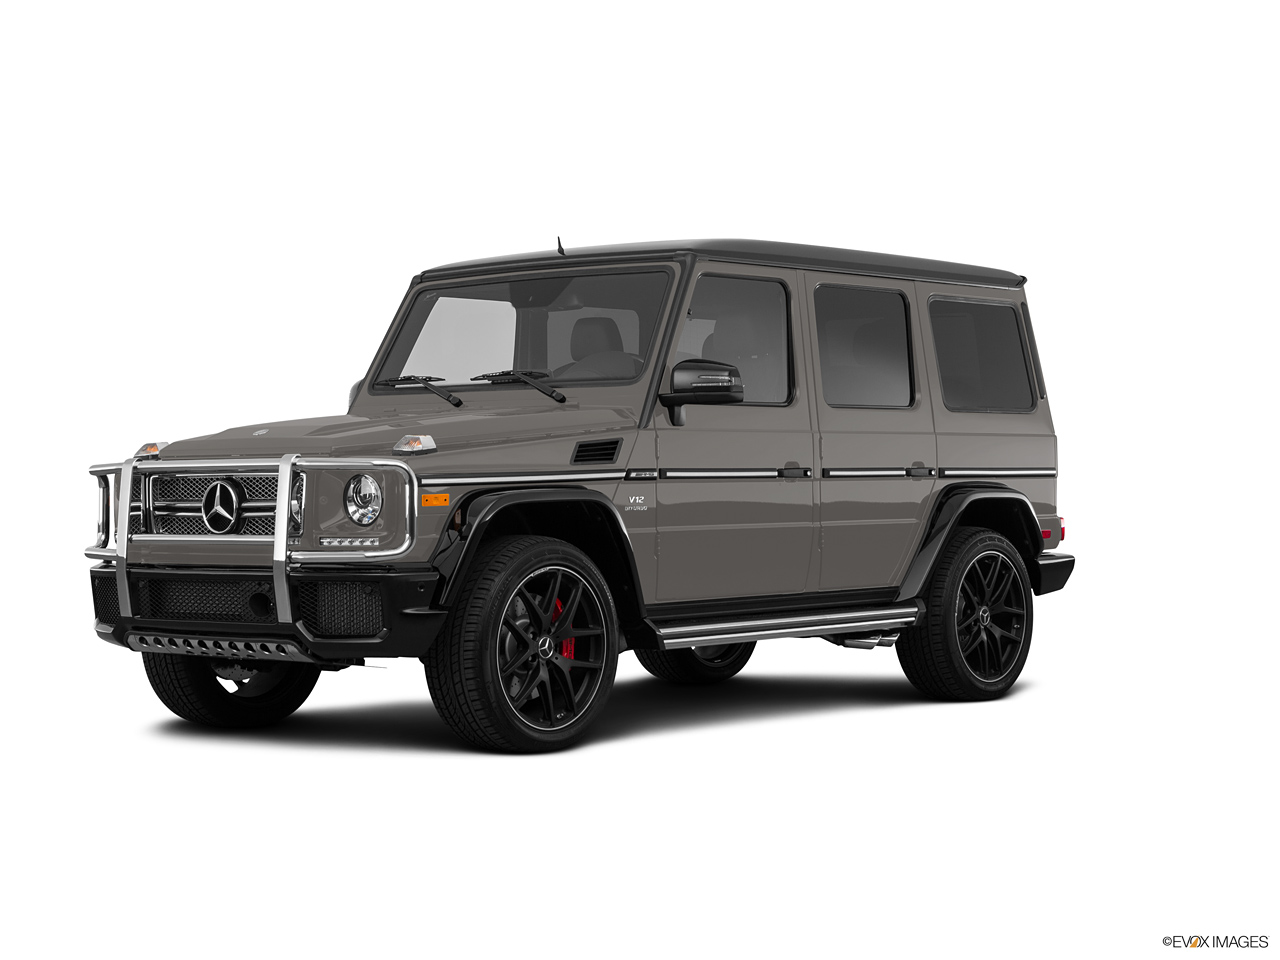 Mercedes benz g class 2017 g 65 amg in uae new car prices for Mercedes benz g class amg